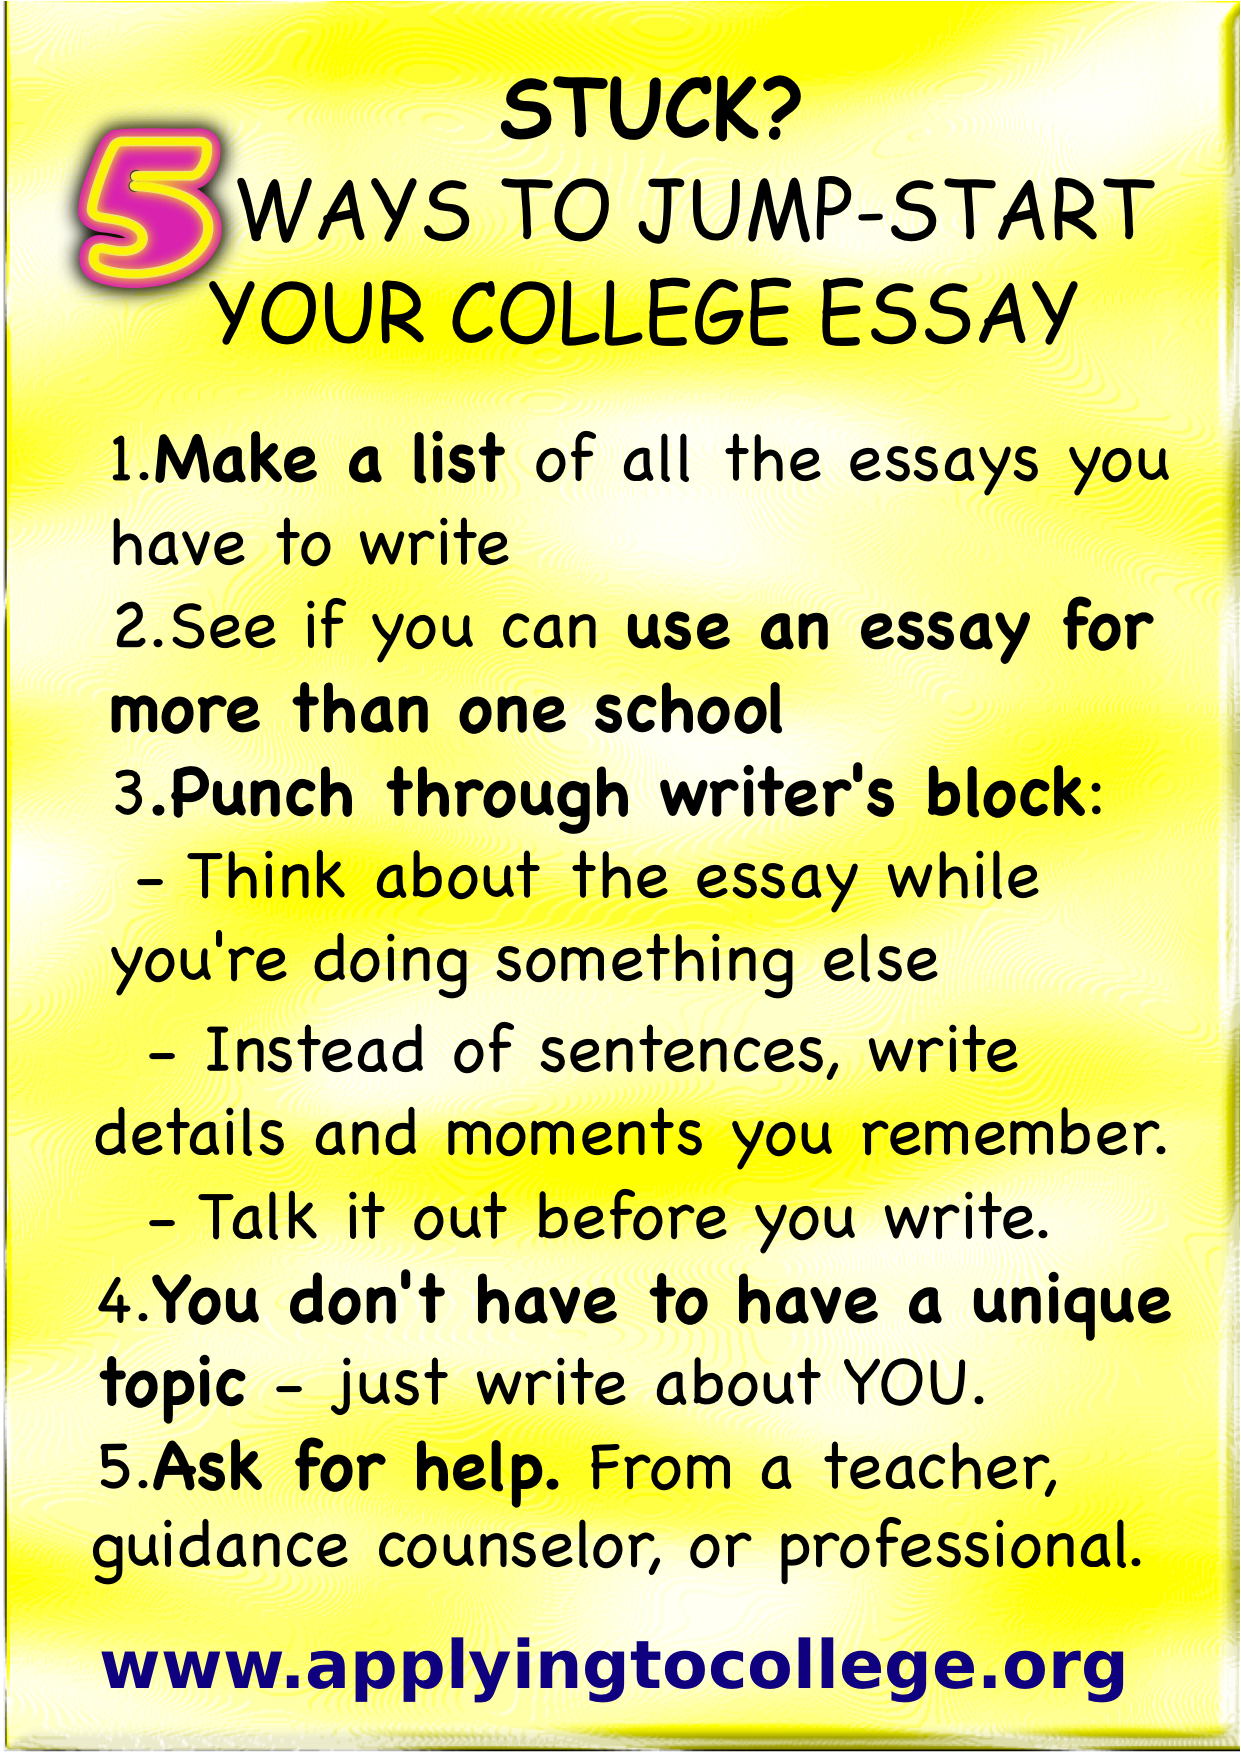 write my college entrance essay Surely no parent would think of writing their child's admissions essay, would they   a tutor or other professional help write your child's college admissions essay.